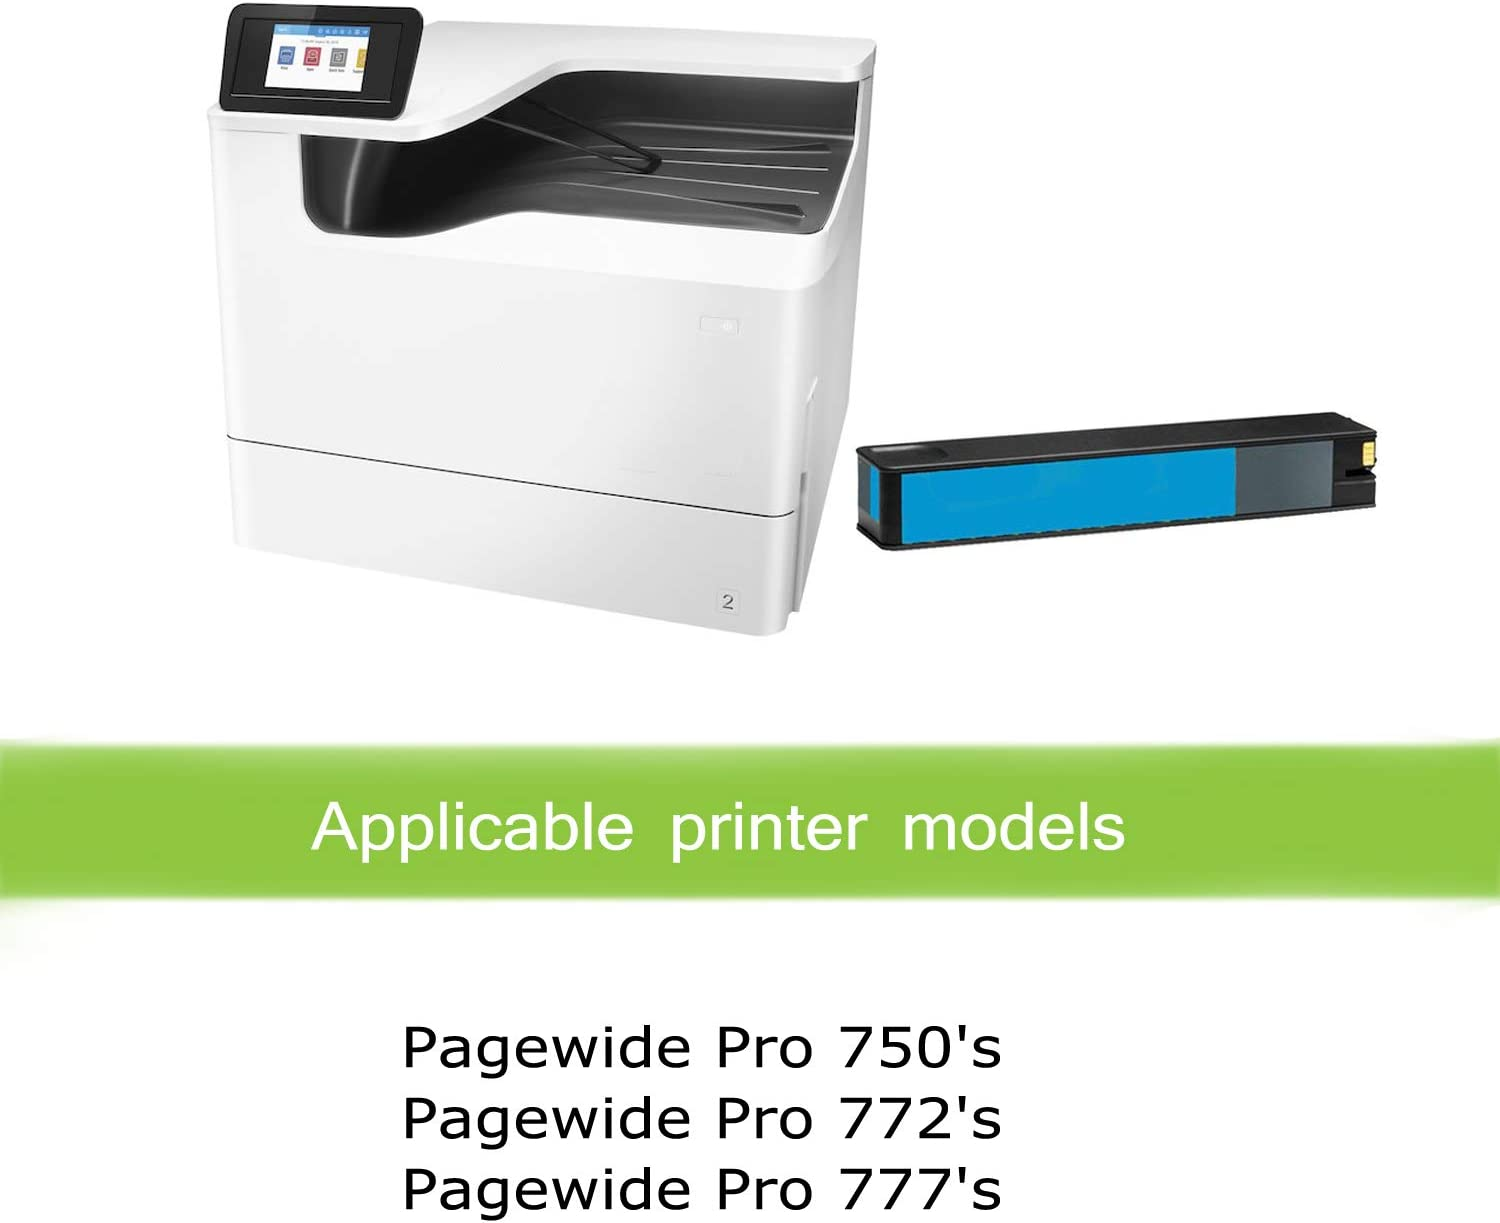 777hc 990X 772zt Yellow 777zHigh Yield 750dw Works with: PageWide Pro 750dn CNY Toner Compatible Inkjet Replacement for M0J97AN 772dn